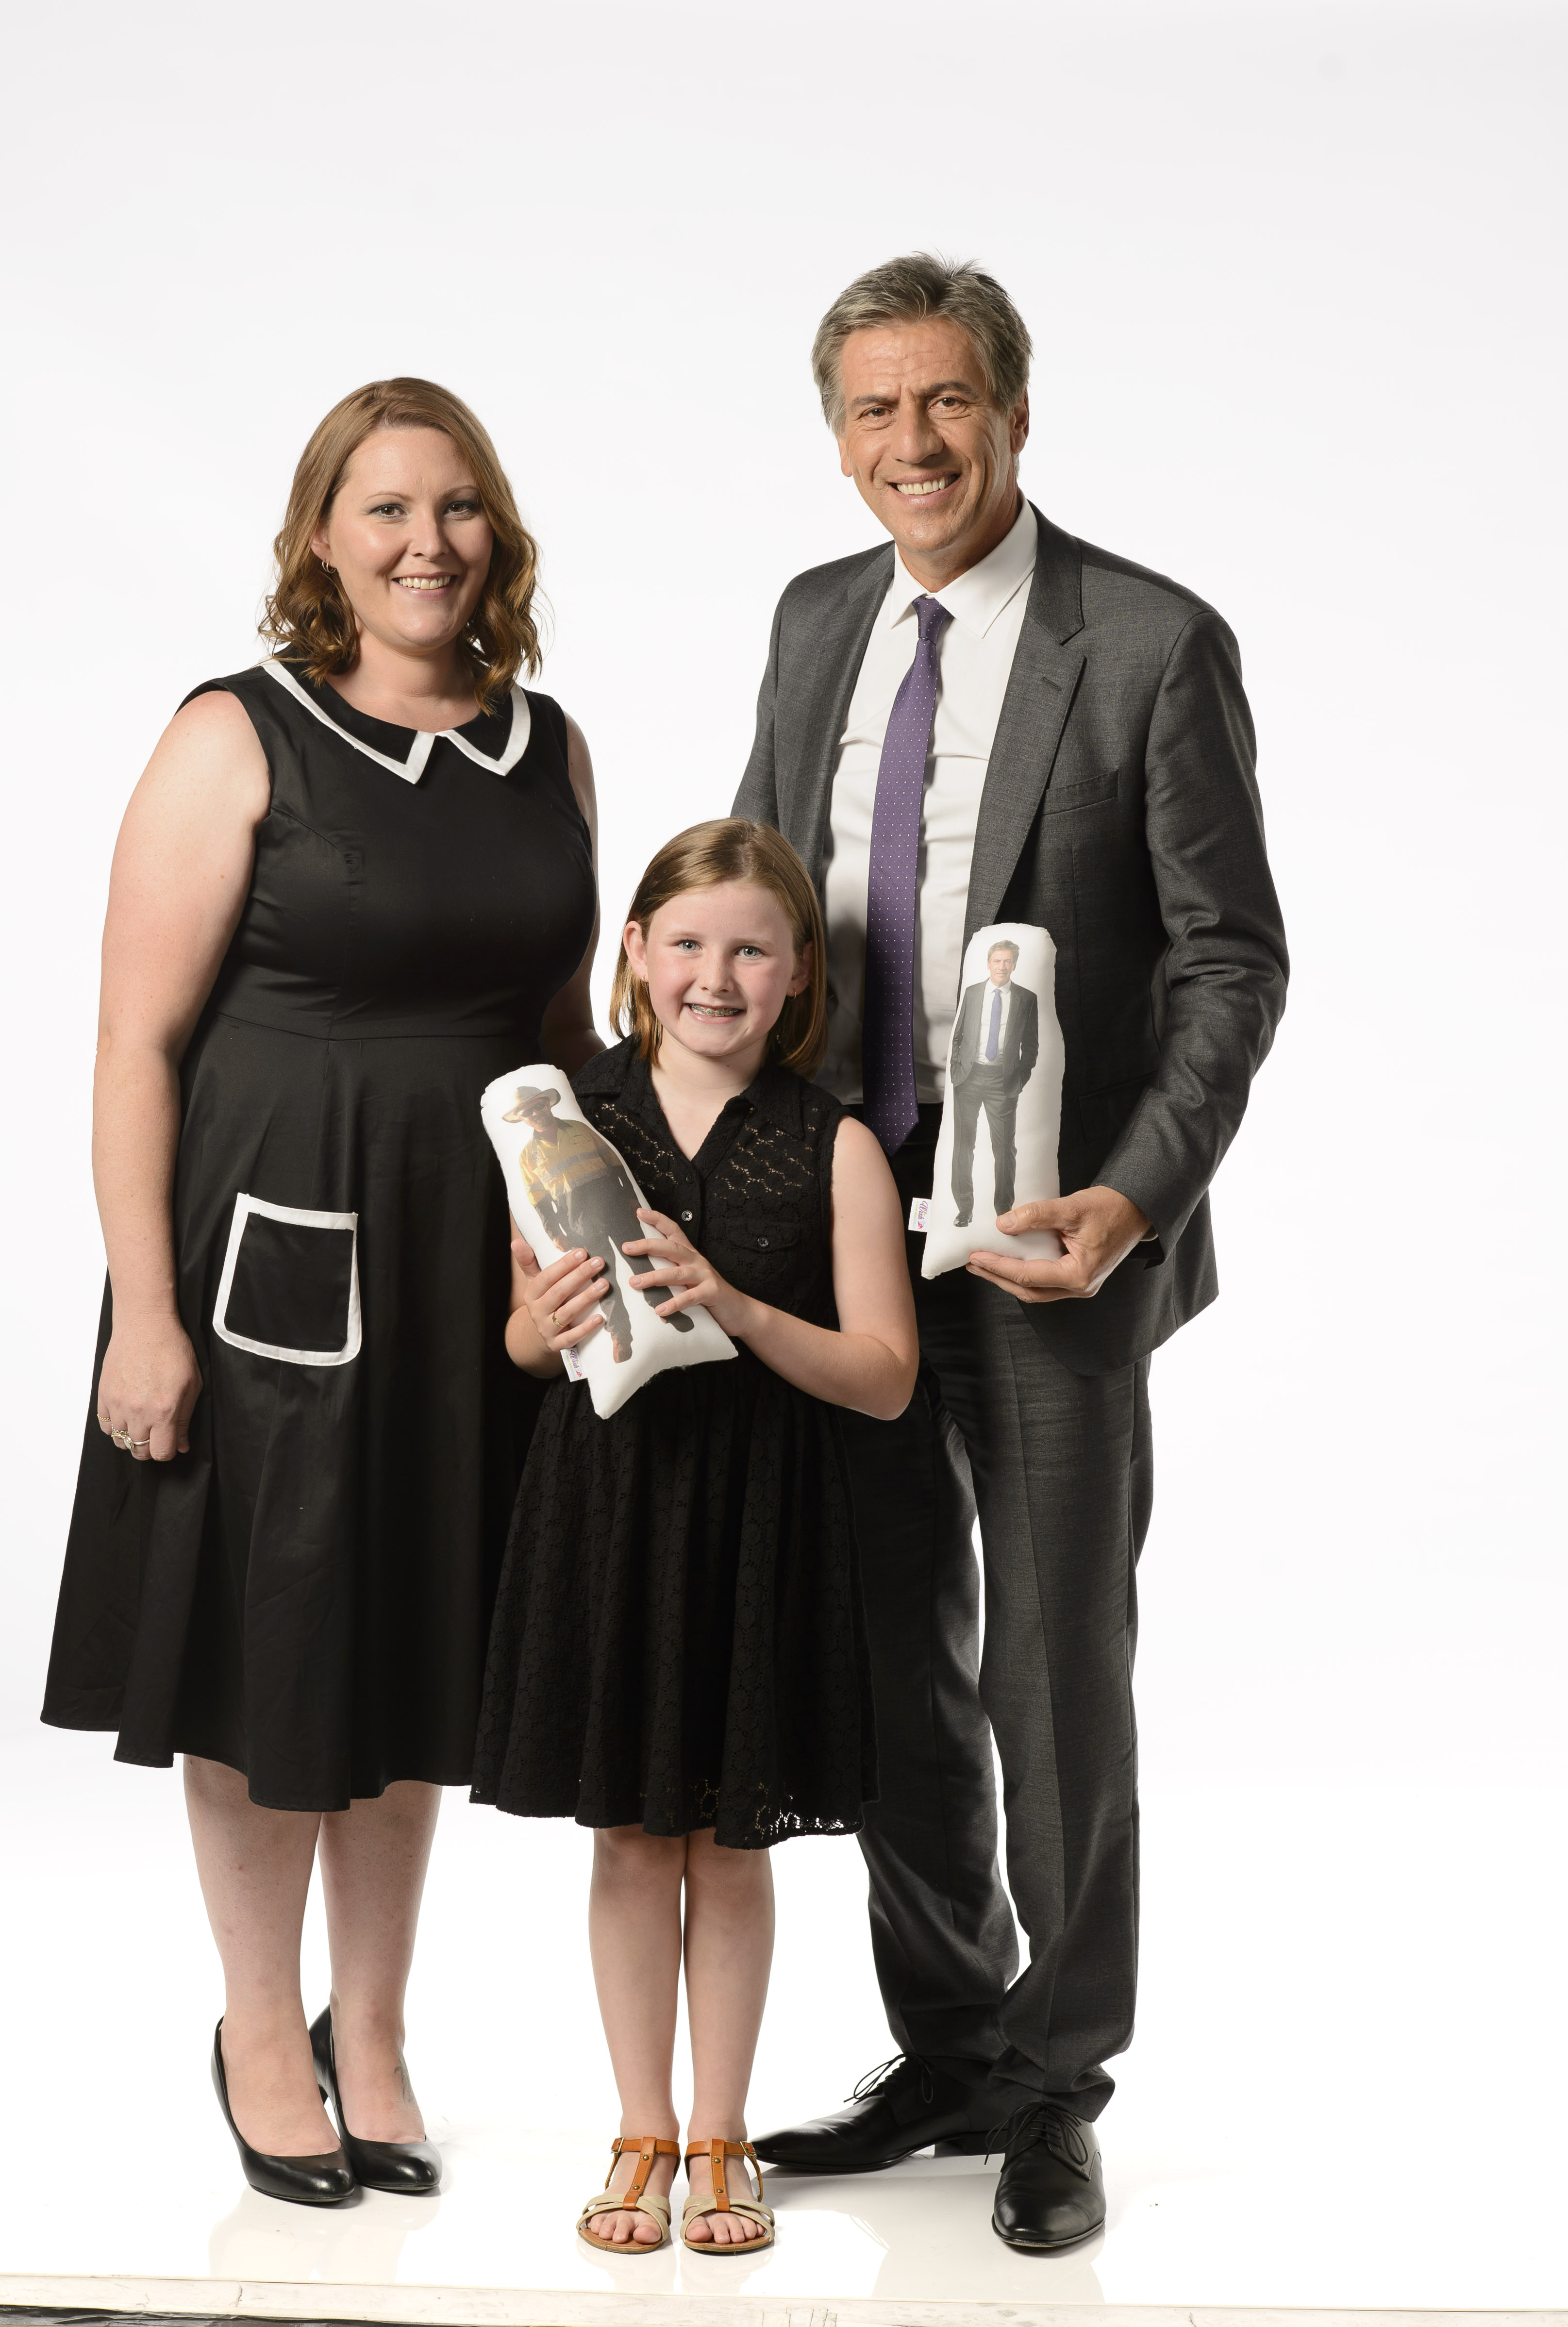 Lauren Martin, her daughter Lily, and Andrew Banks. Source: Supplied